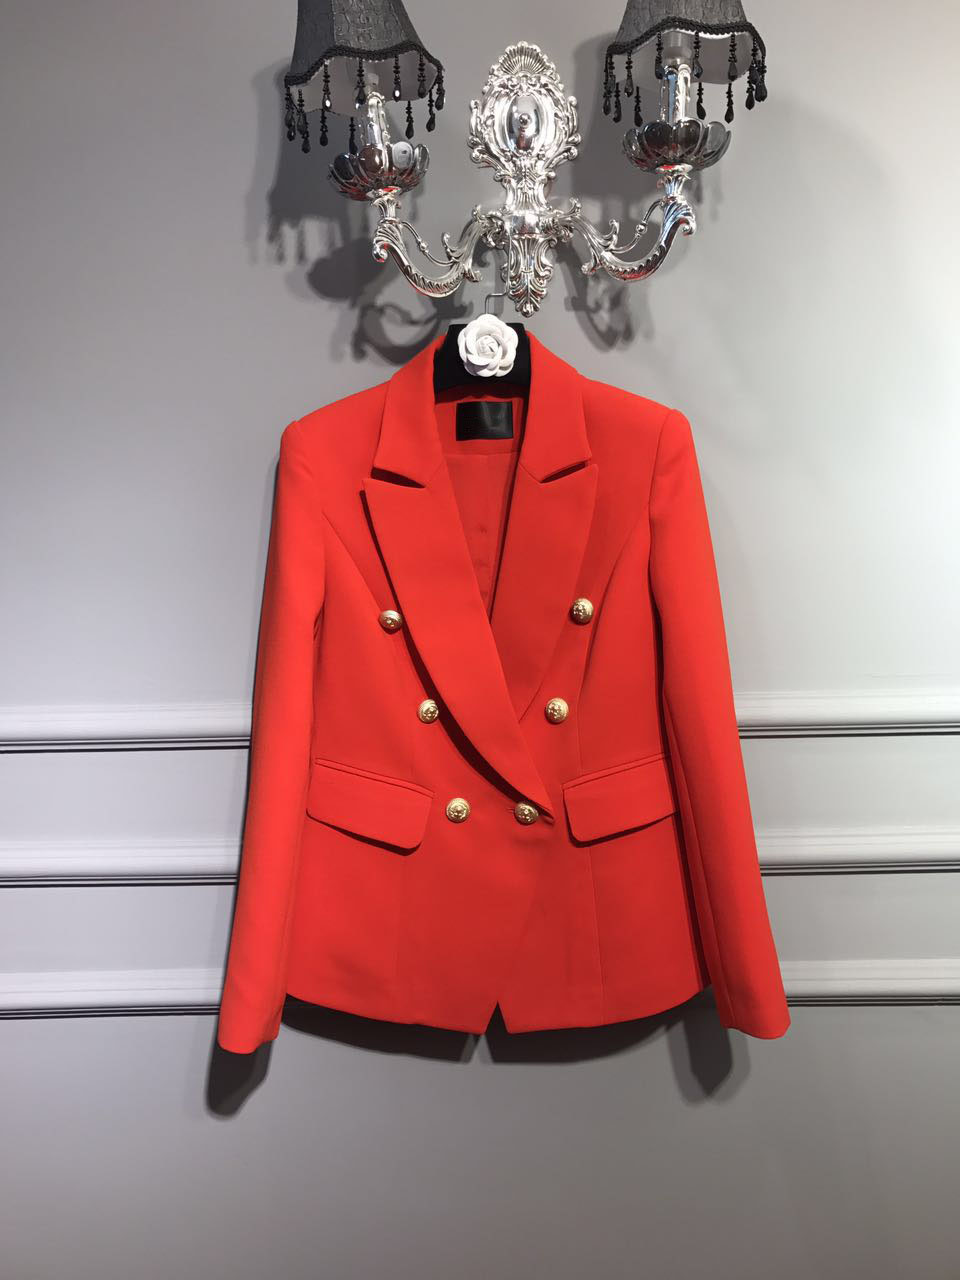 2017 NEW Luxury Runway Woman Fashion Red Blazer With Double Breasted Gold Buttons Lapel Collar Front Flap Pockets